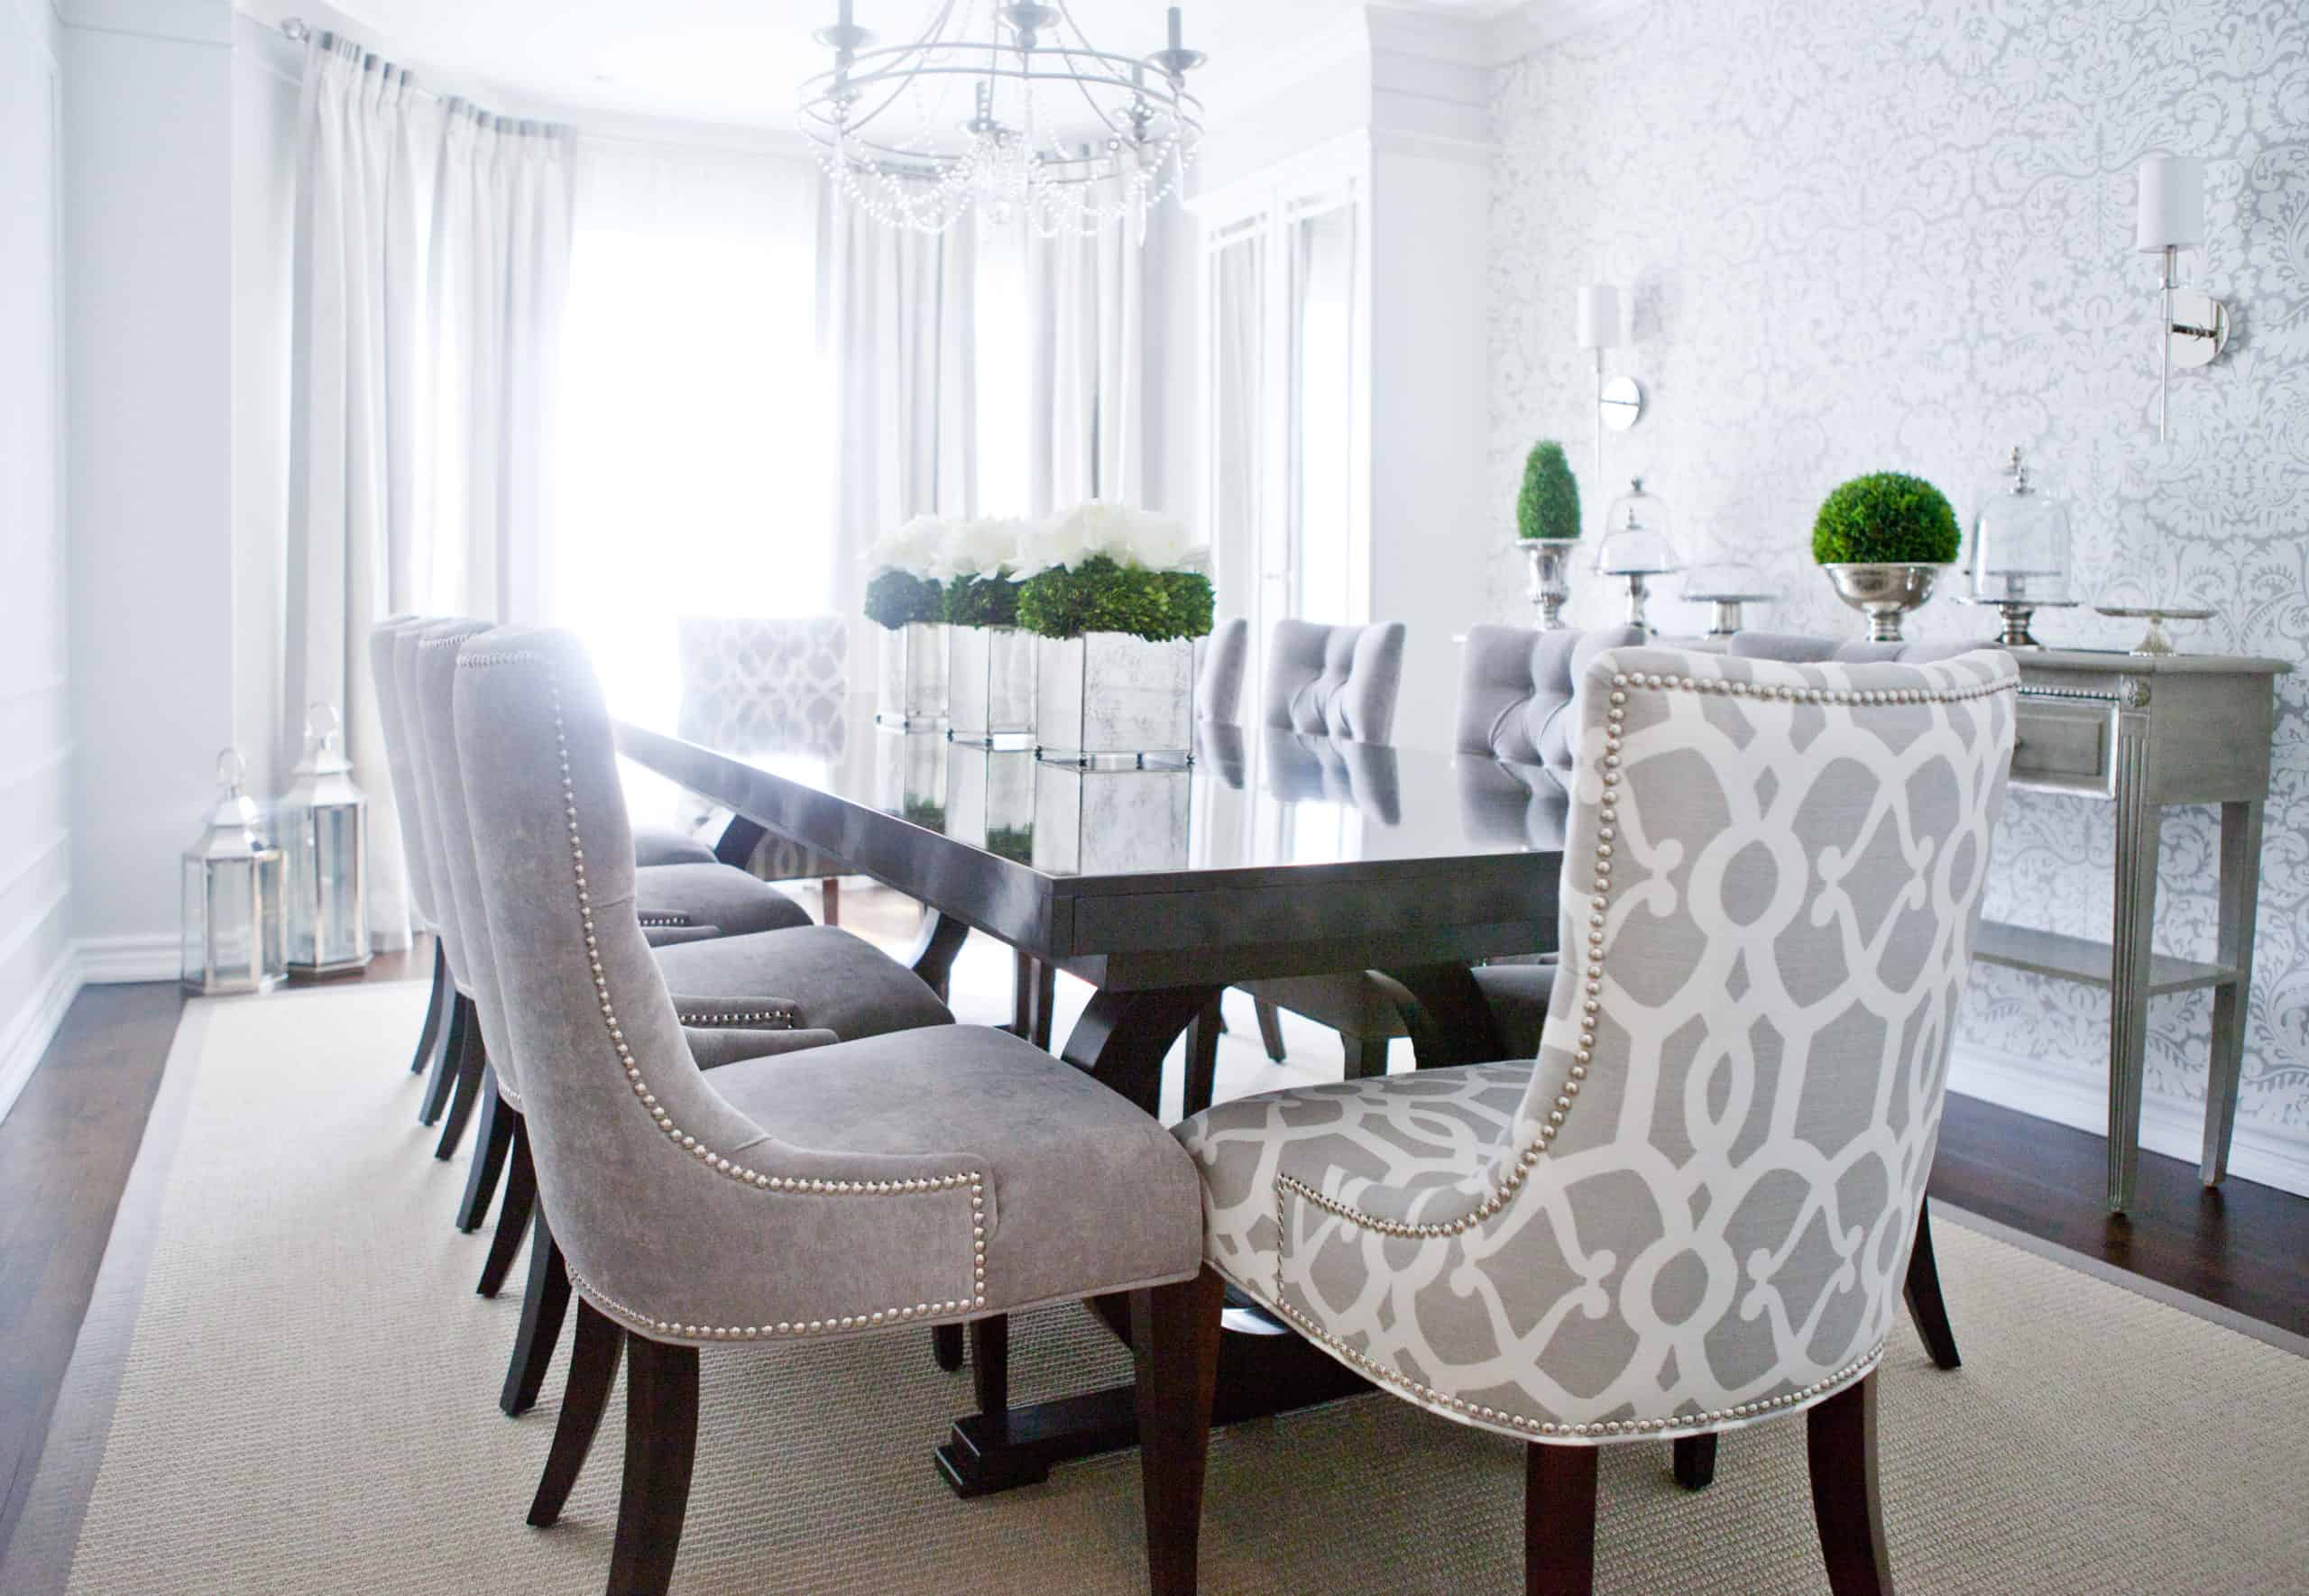 White and gray chairs at the end of the dining room table